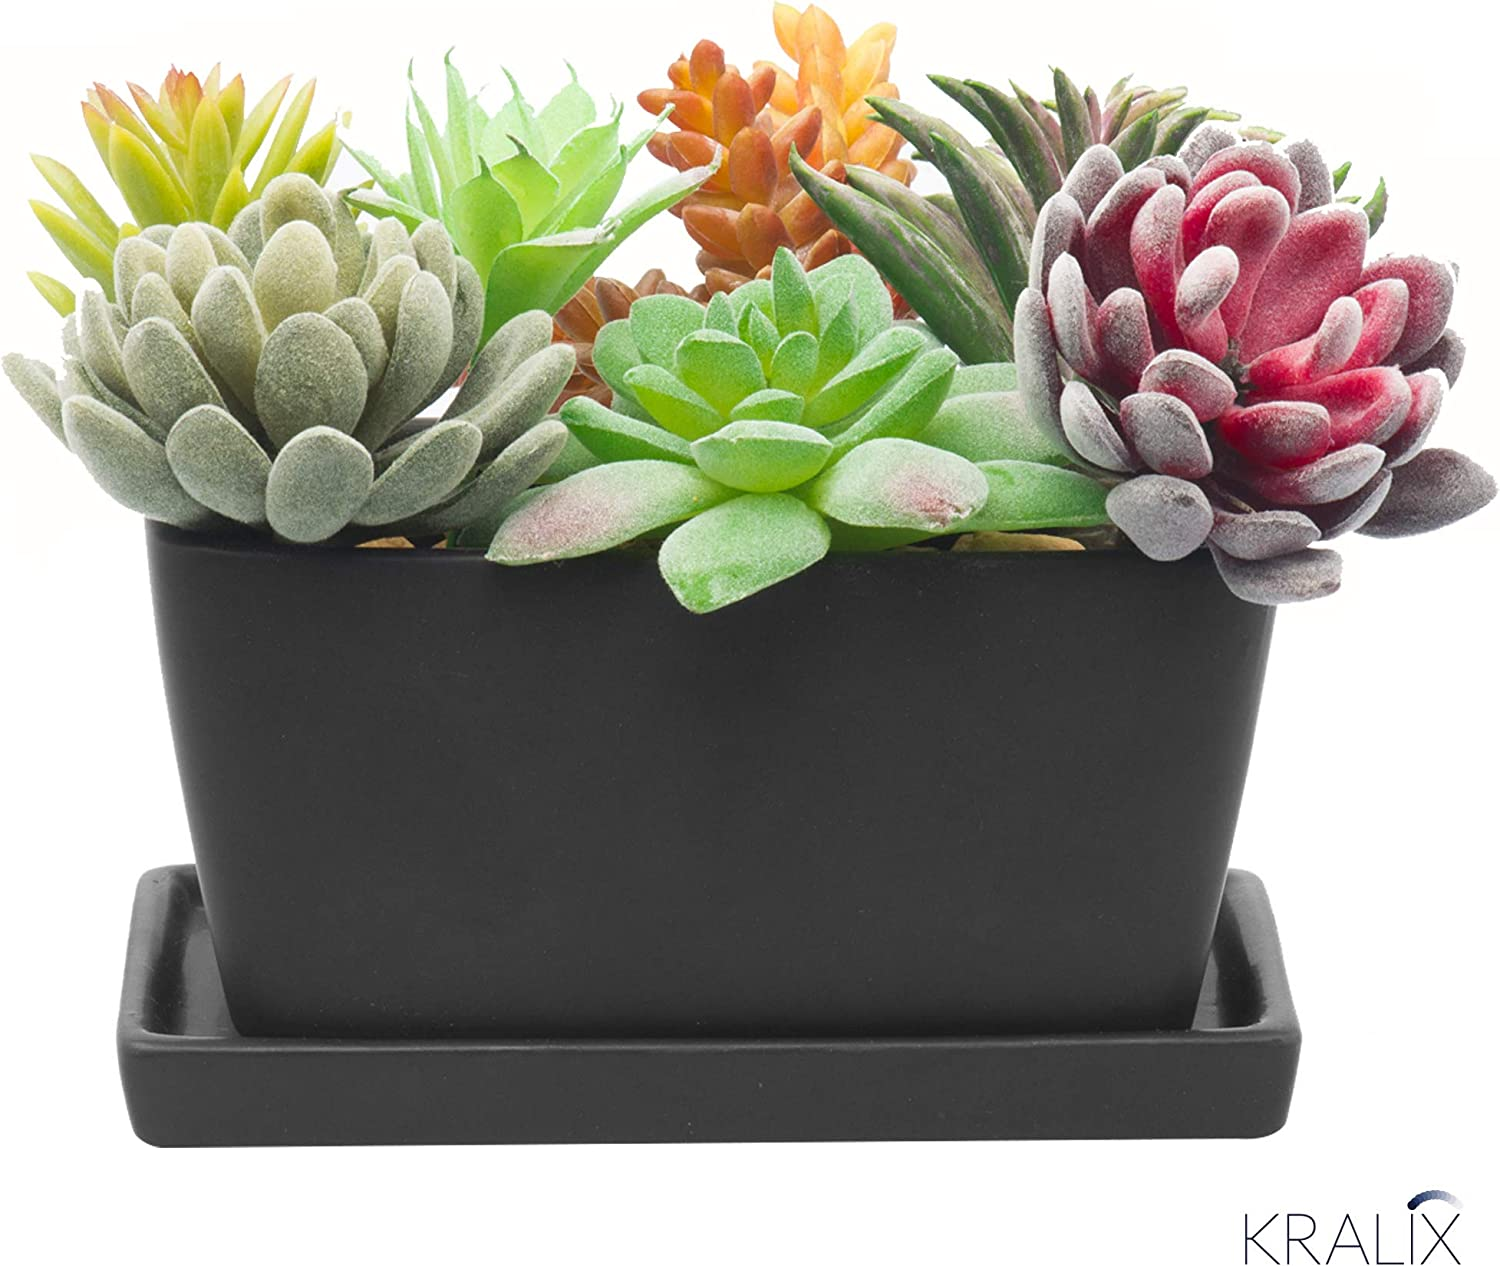 Succulent Planter Ceramic Containers, Cactus Planters, Flower Pots with Drainage Hole and Tray, Black Rectangular Planter